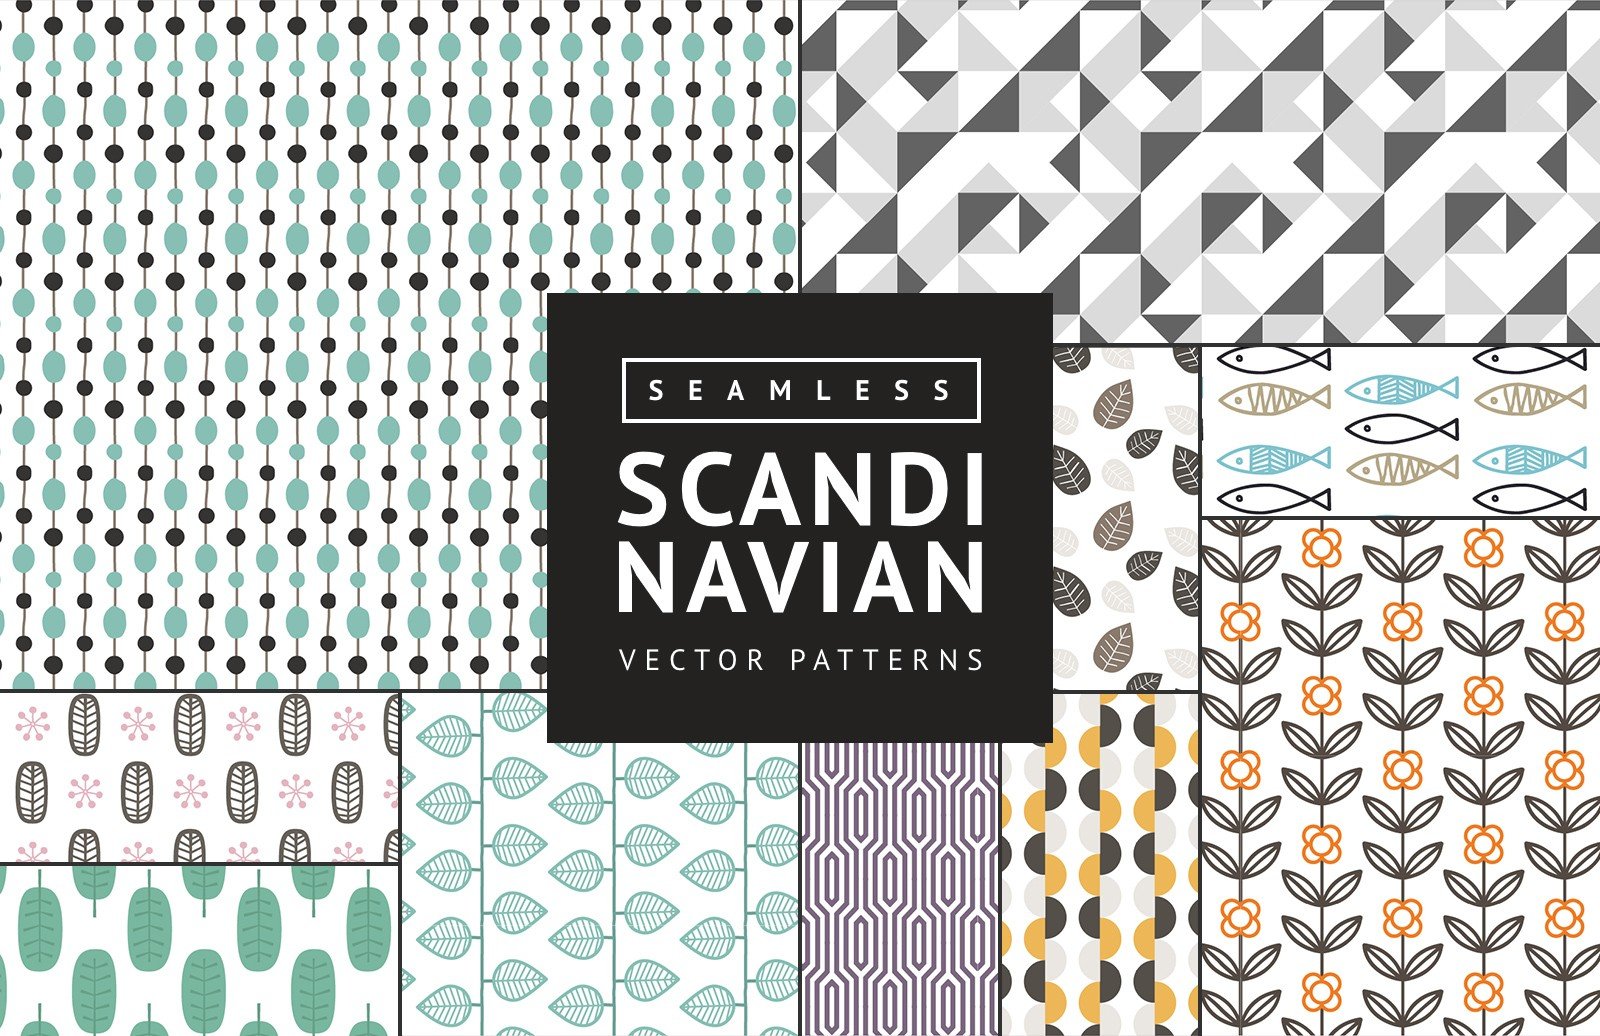 Seamless  Scandinavian  Vector  Patterns  Preview 1A